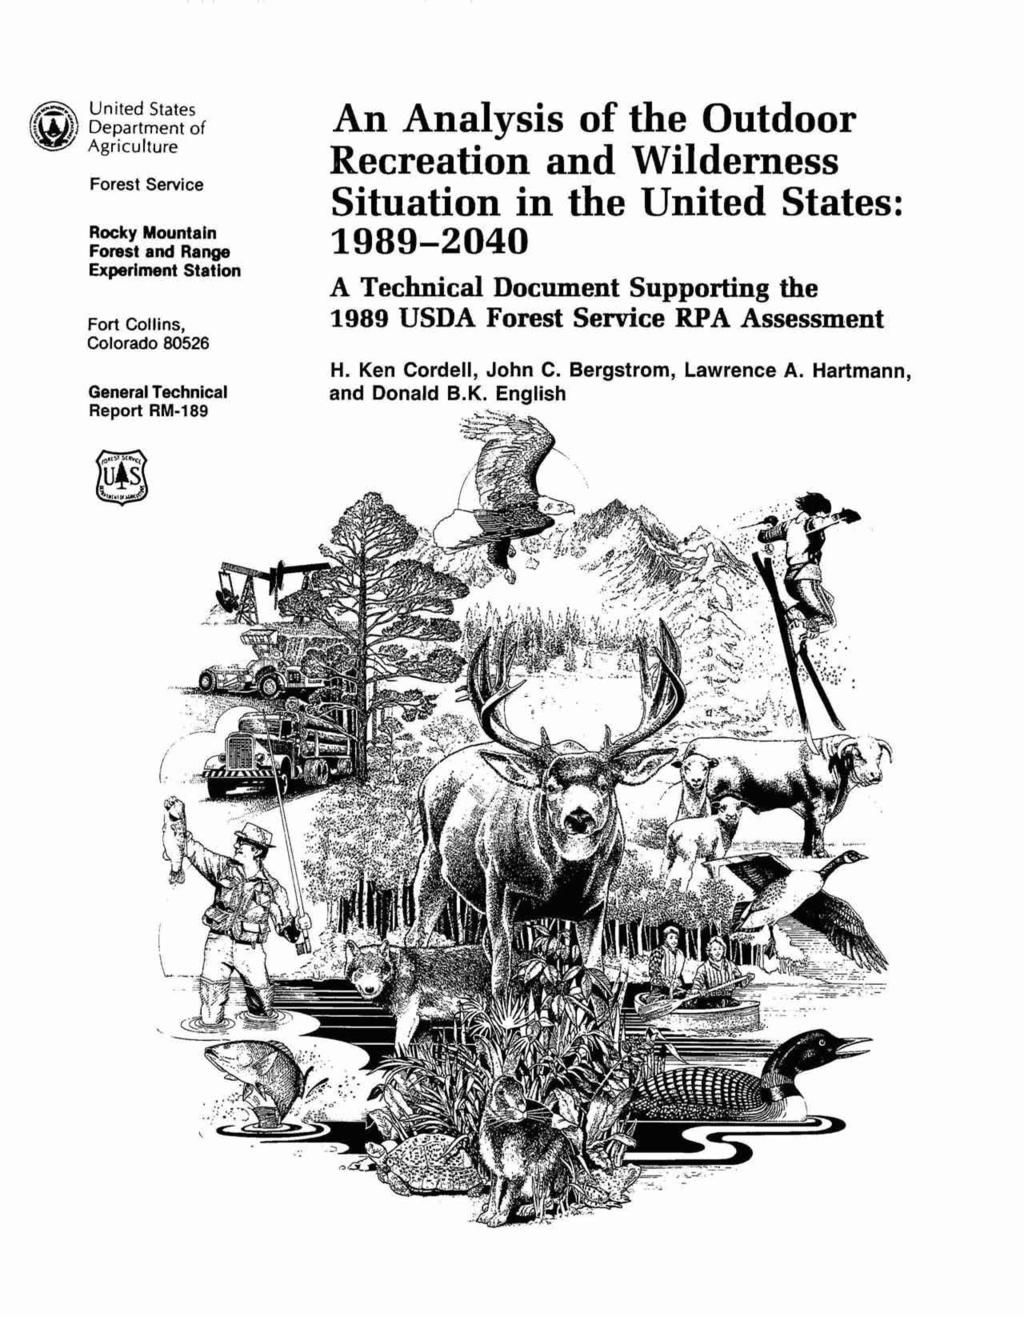 {rn w United States Department of Agriculture Forest Service Rocky Mountaln Forest and Range Experiment Station Fort Collins, Colorado 80526 General Technical Report RM-f 89 This file was created by